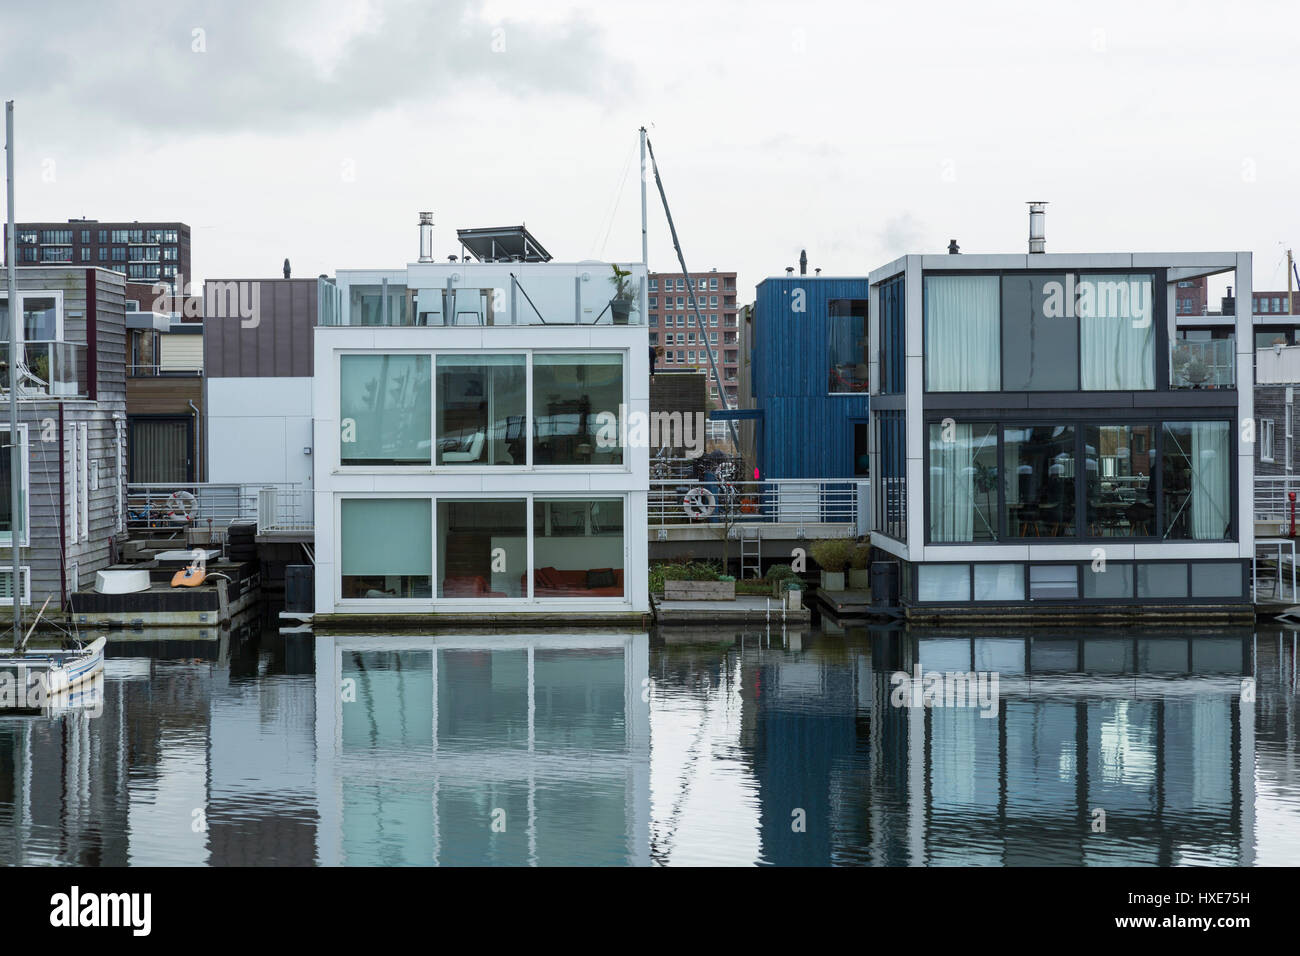 floating houses amsterdam stock photos floating houses amsterdam stock images alamy. Black Bedroom Furniture Sets. Home Design Ideas